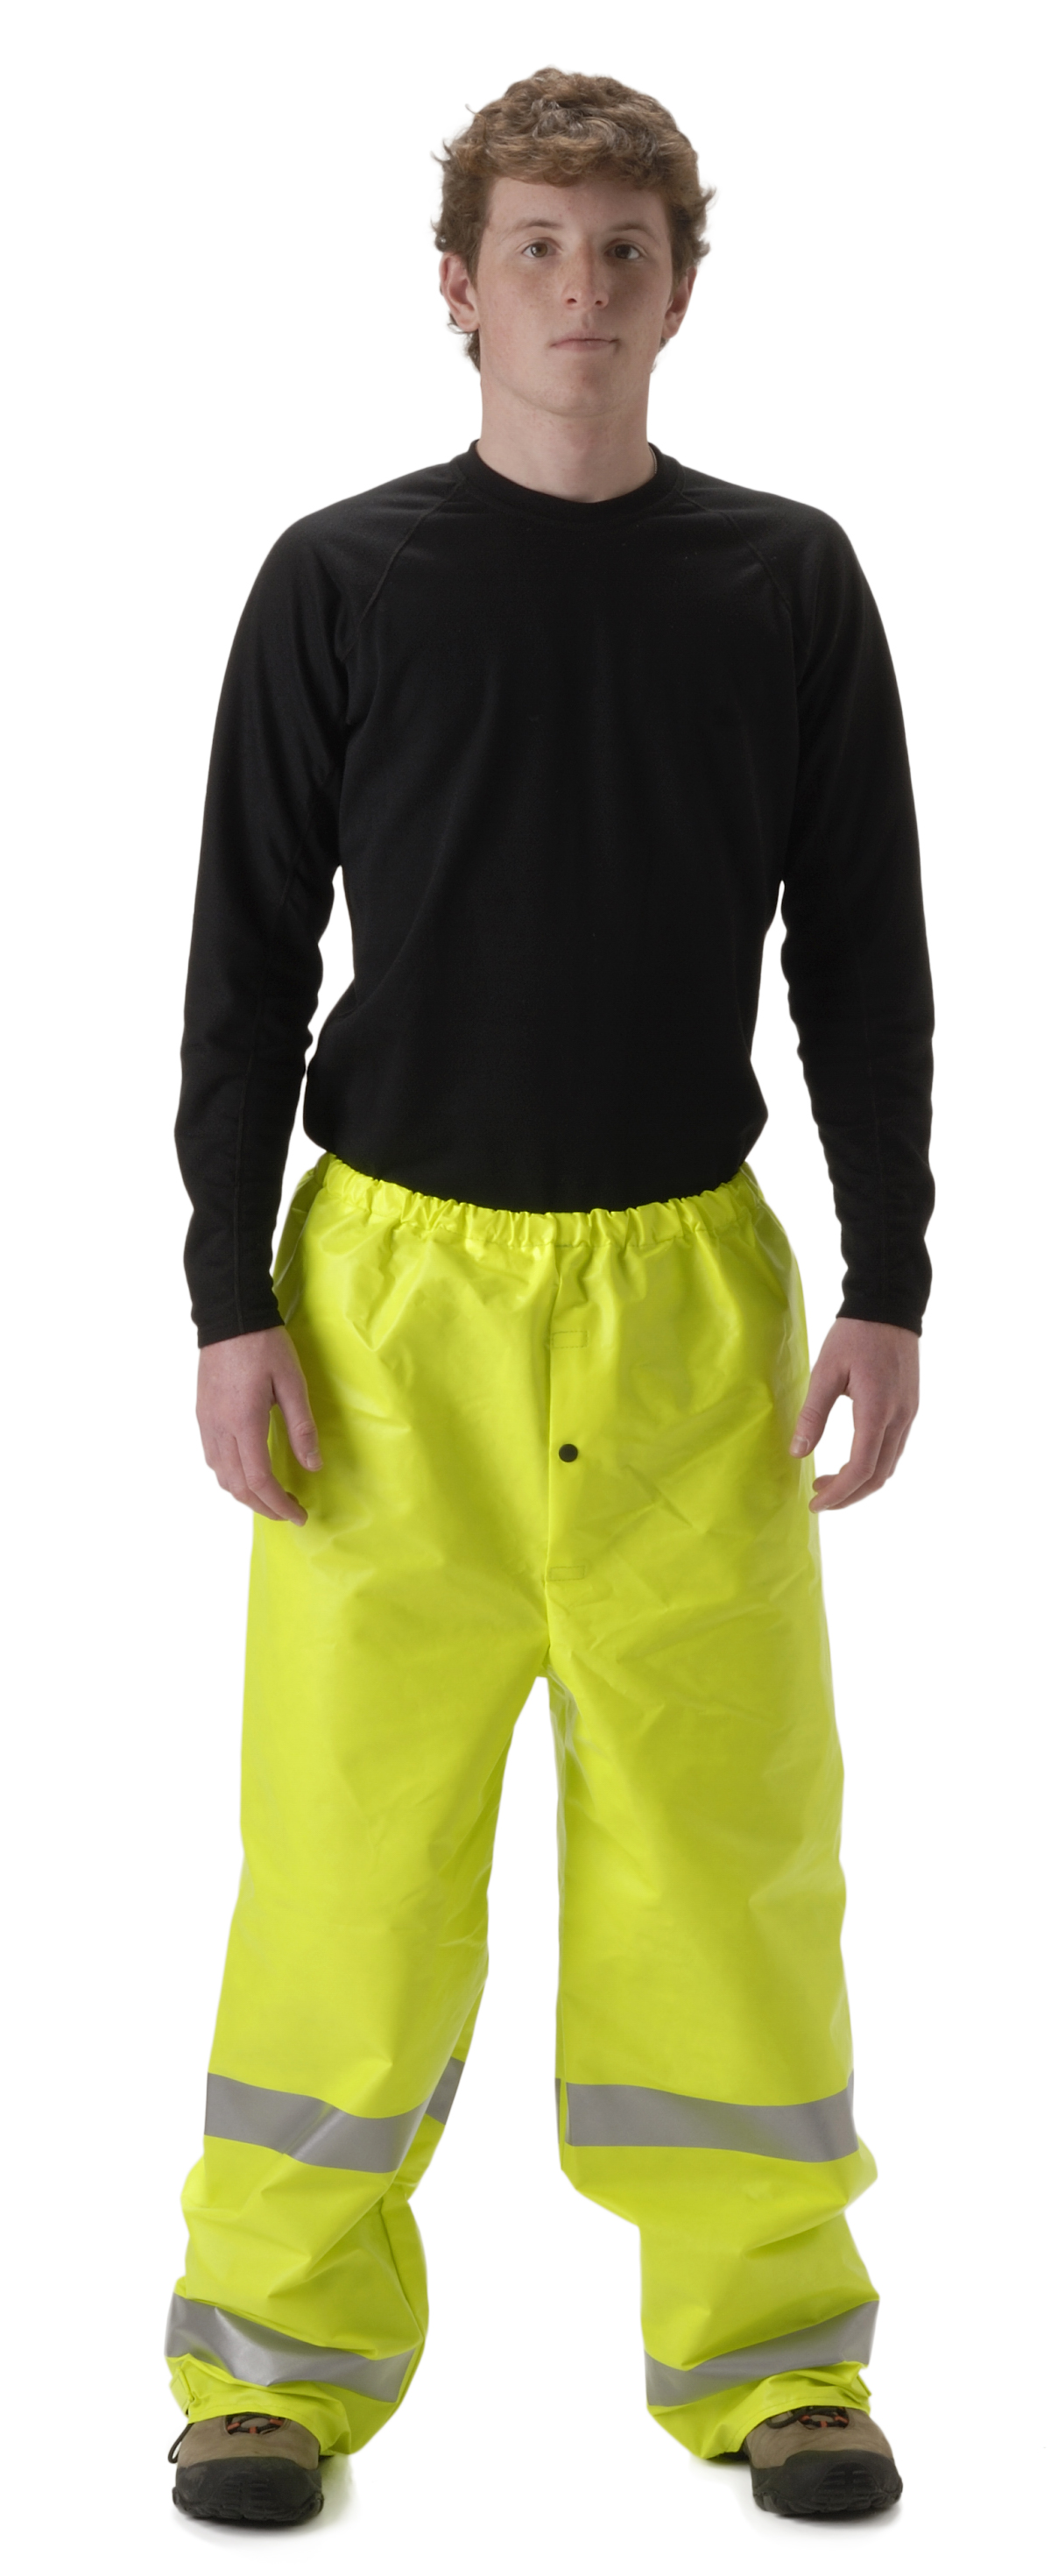 NASCO ARCLite HiVis 1500 Series Raingear Pants Long